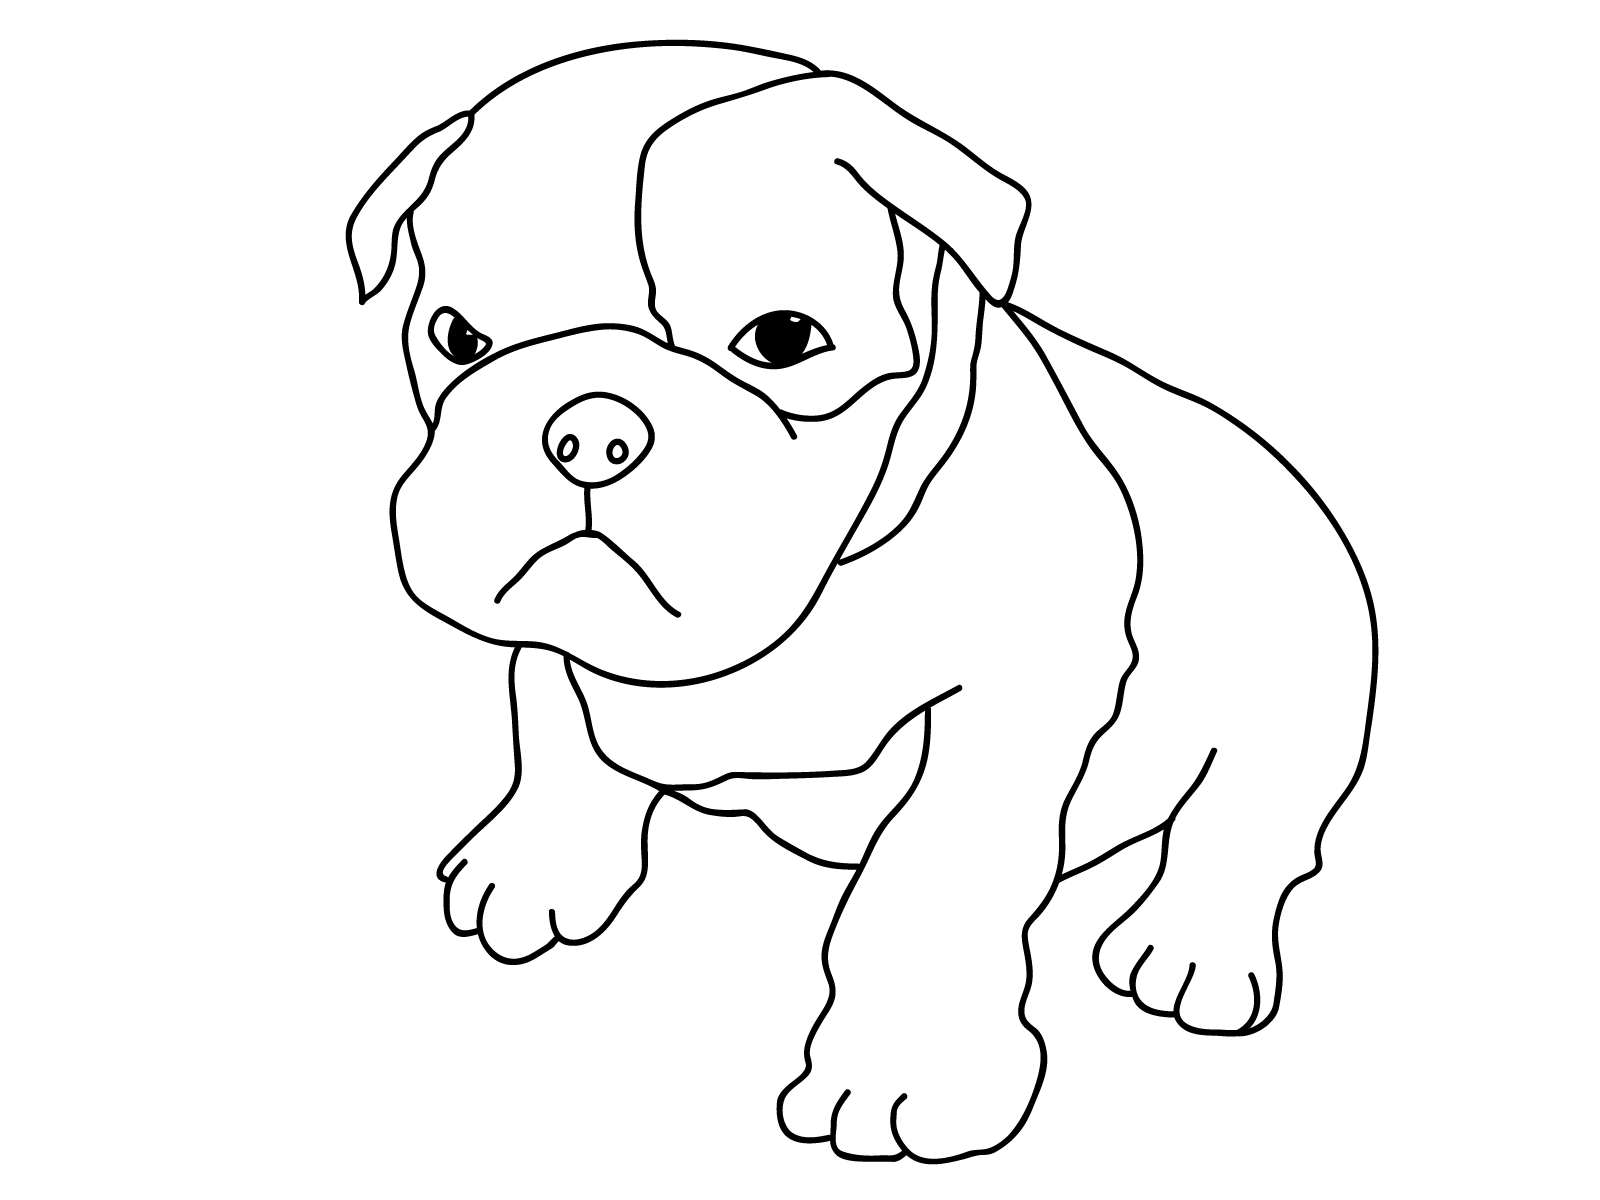 dog coloring page children carolyn39s compositions page 2 coloring dog page